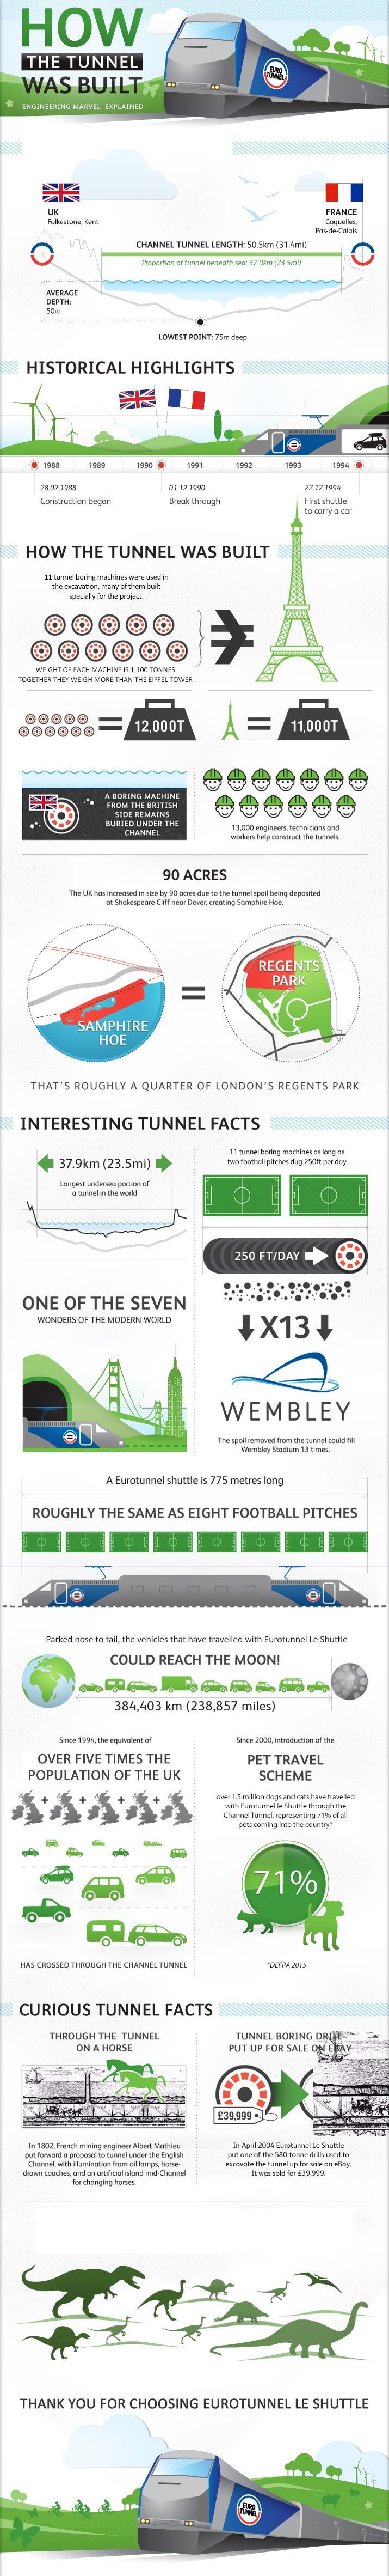 eurotunnel-build-infographic